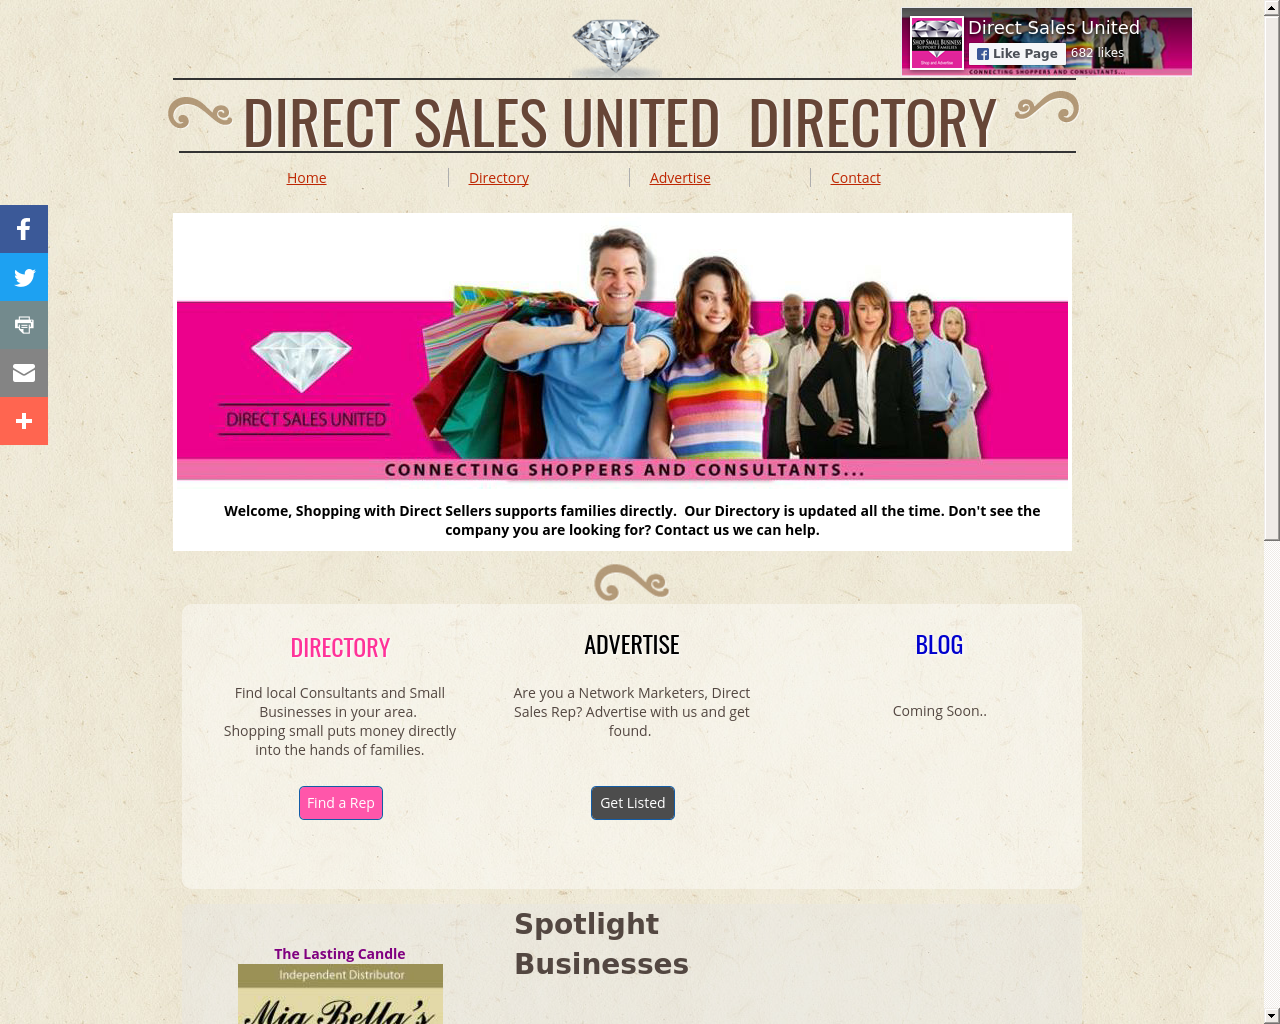 Direct-Sales-United-Advertising-Reviews-Pricing